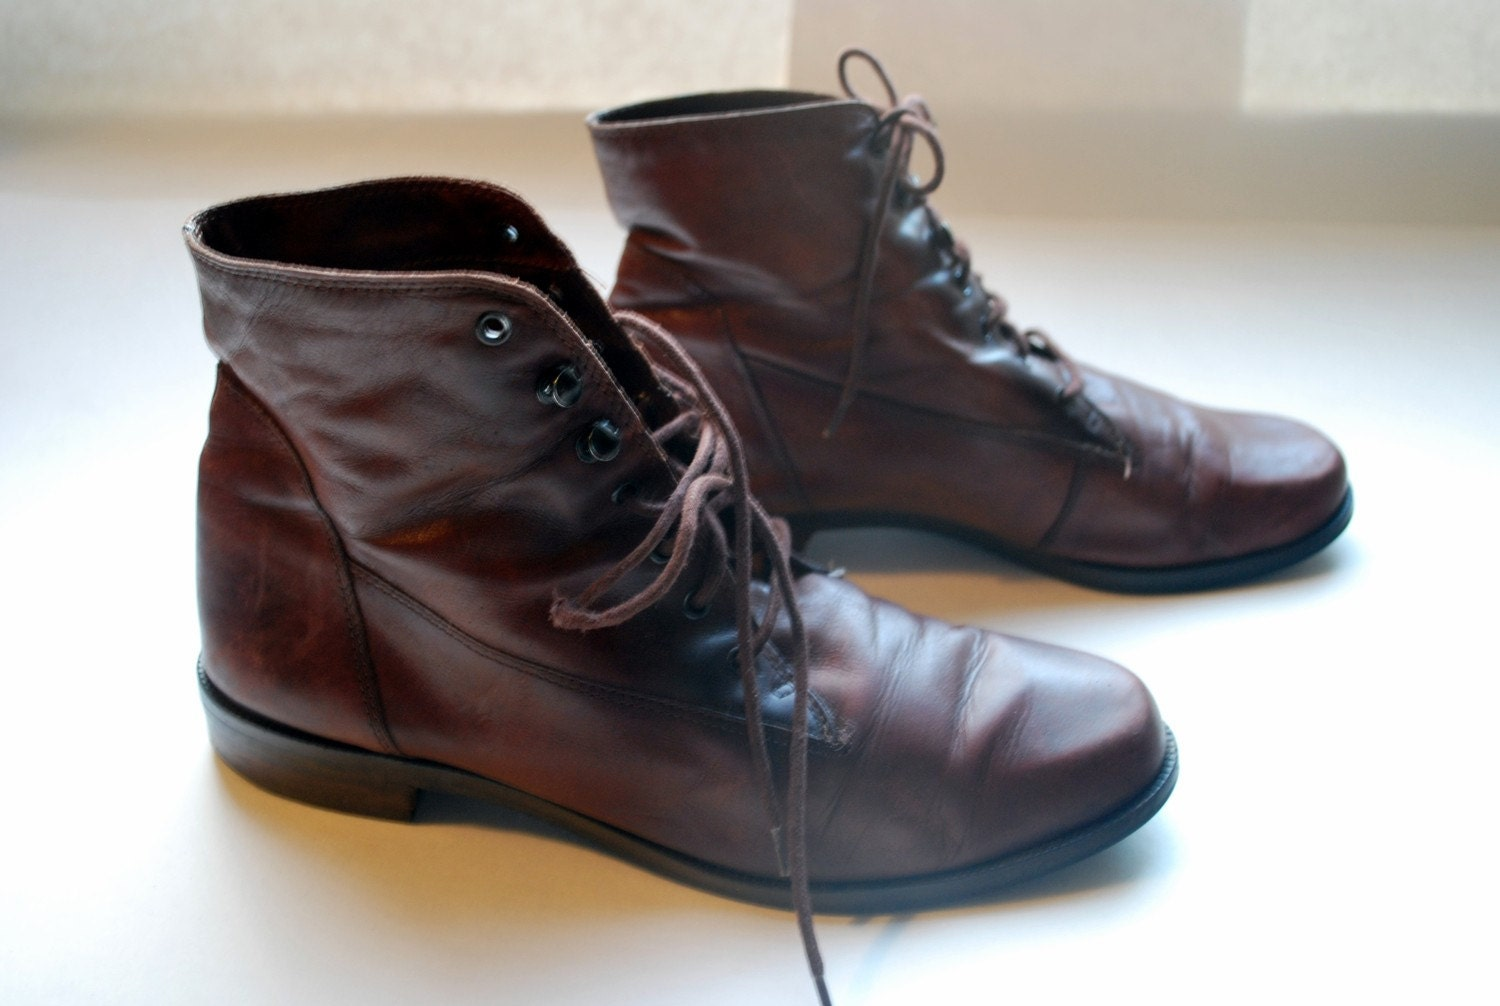 Simple and Supple brown leather granny boots .vintage lace up shoes by Nine West in 8 1/2 it seems